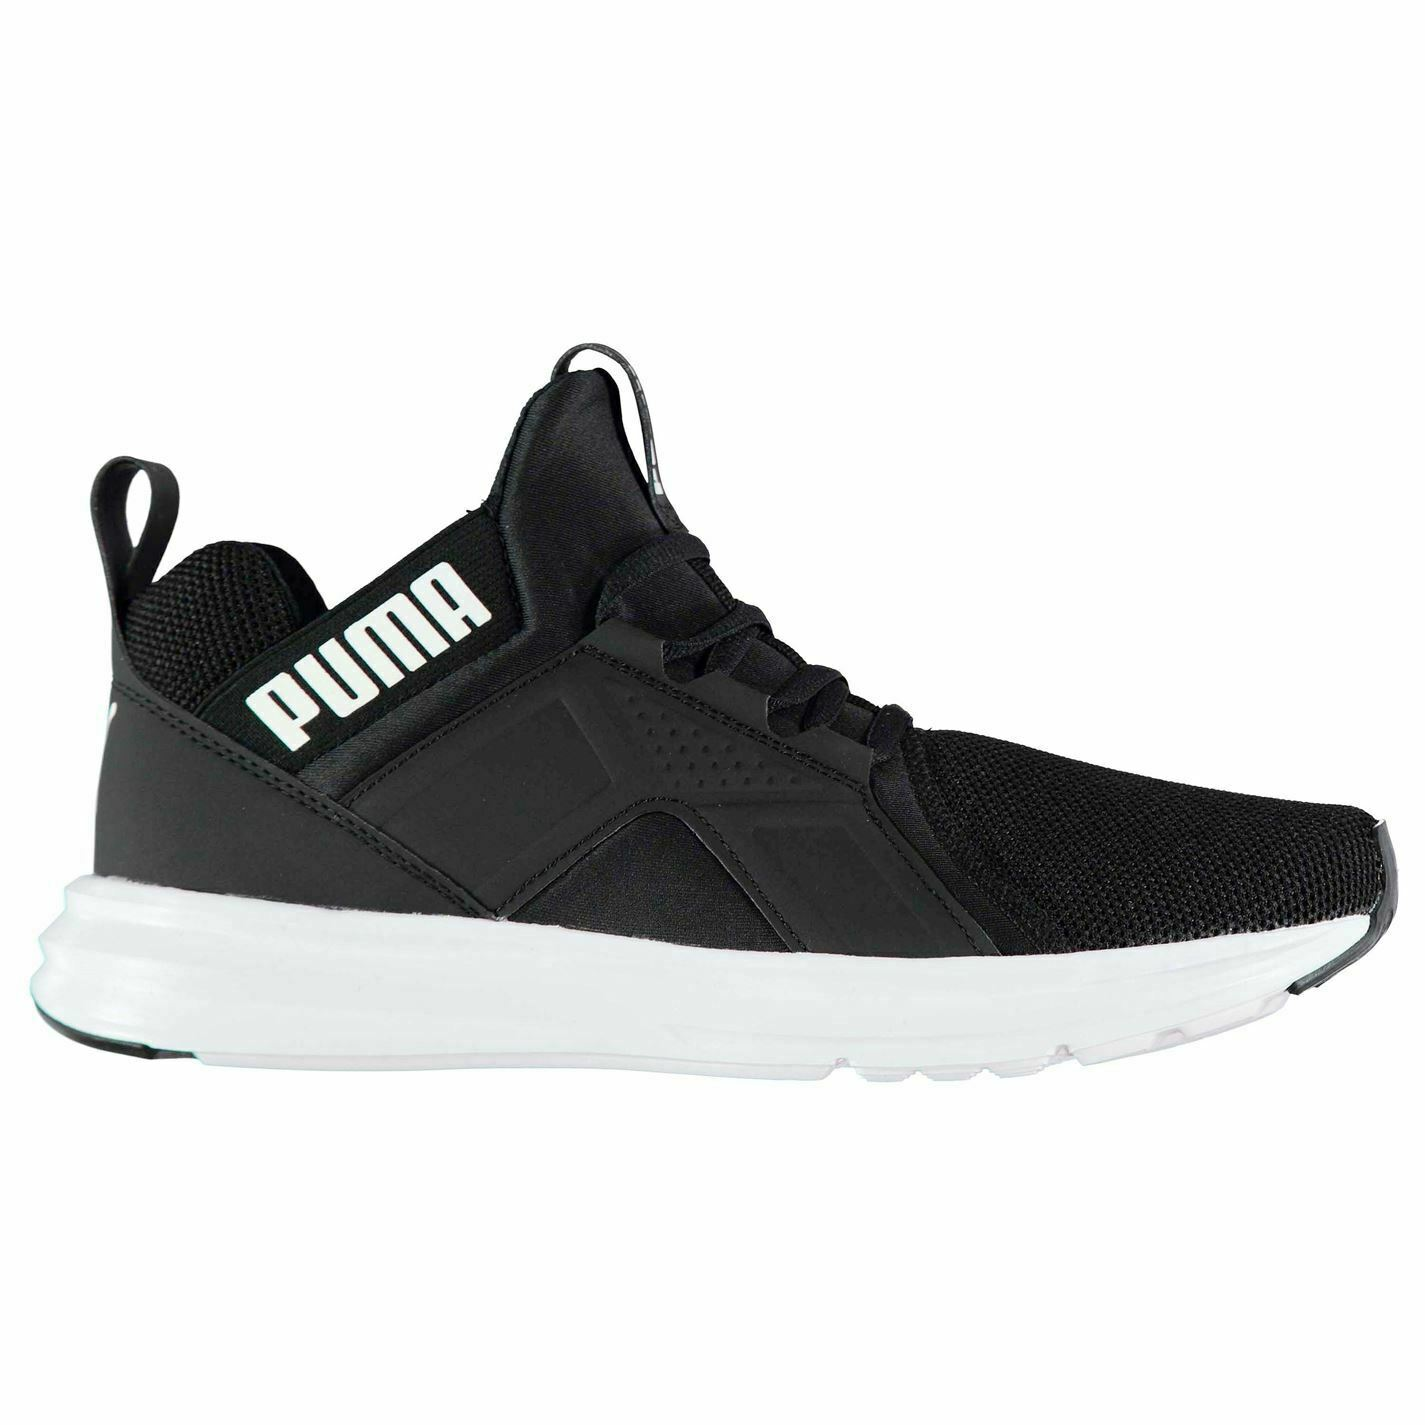 Puma Enzo Mesh Runners Trainers Mens Black Athletic Sneakers shoes